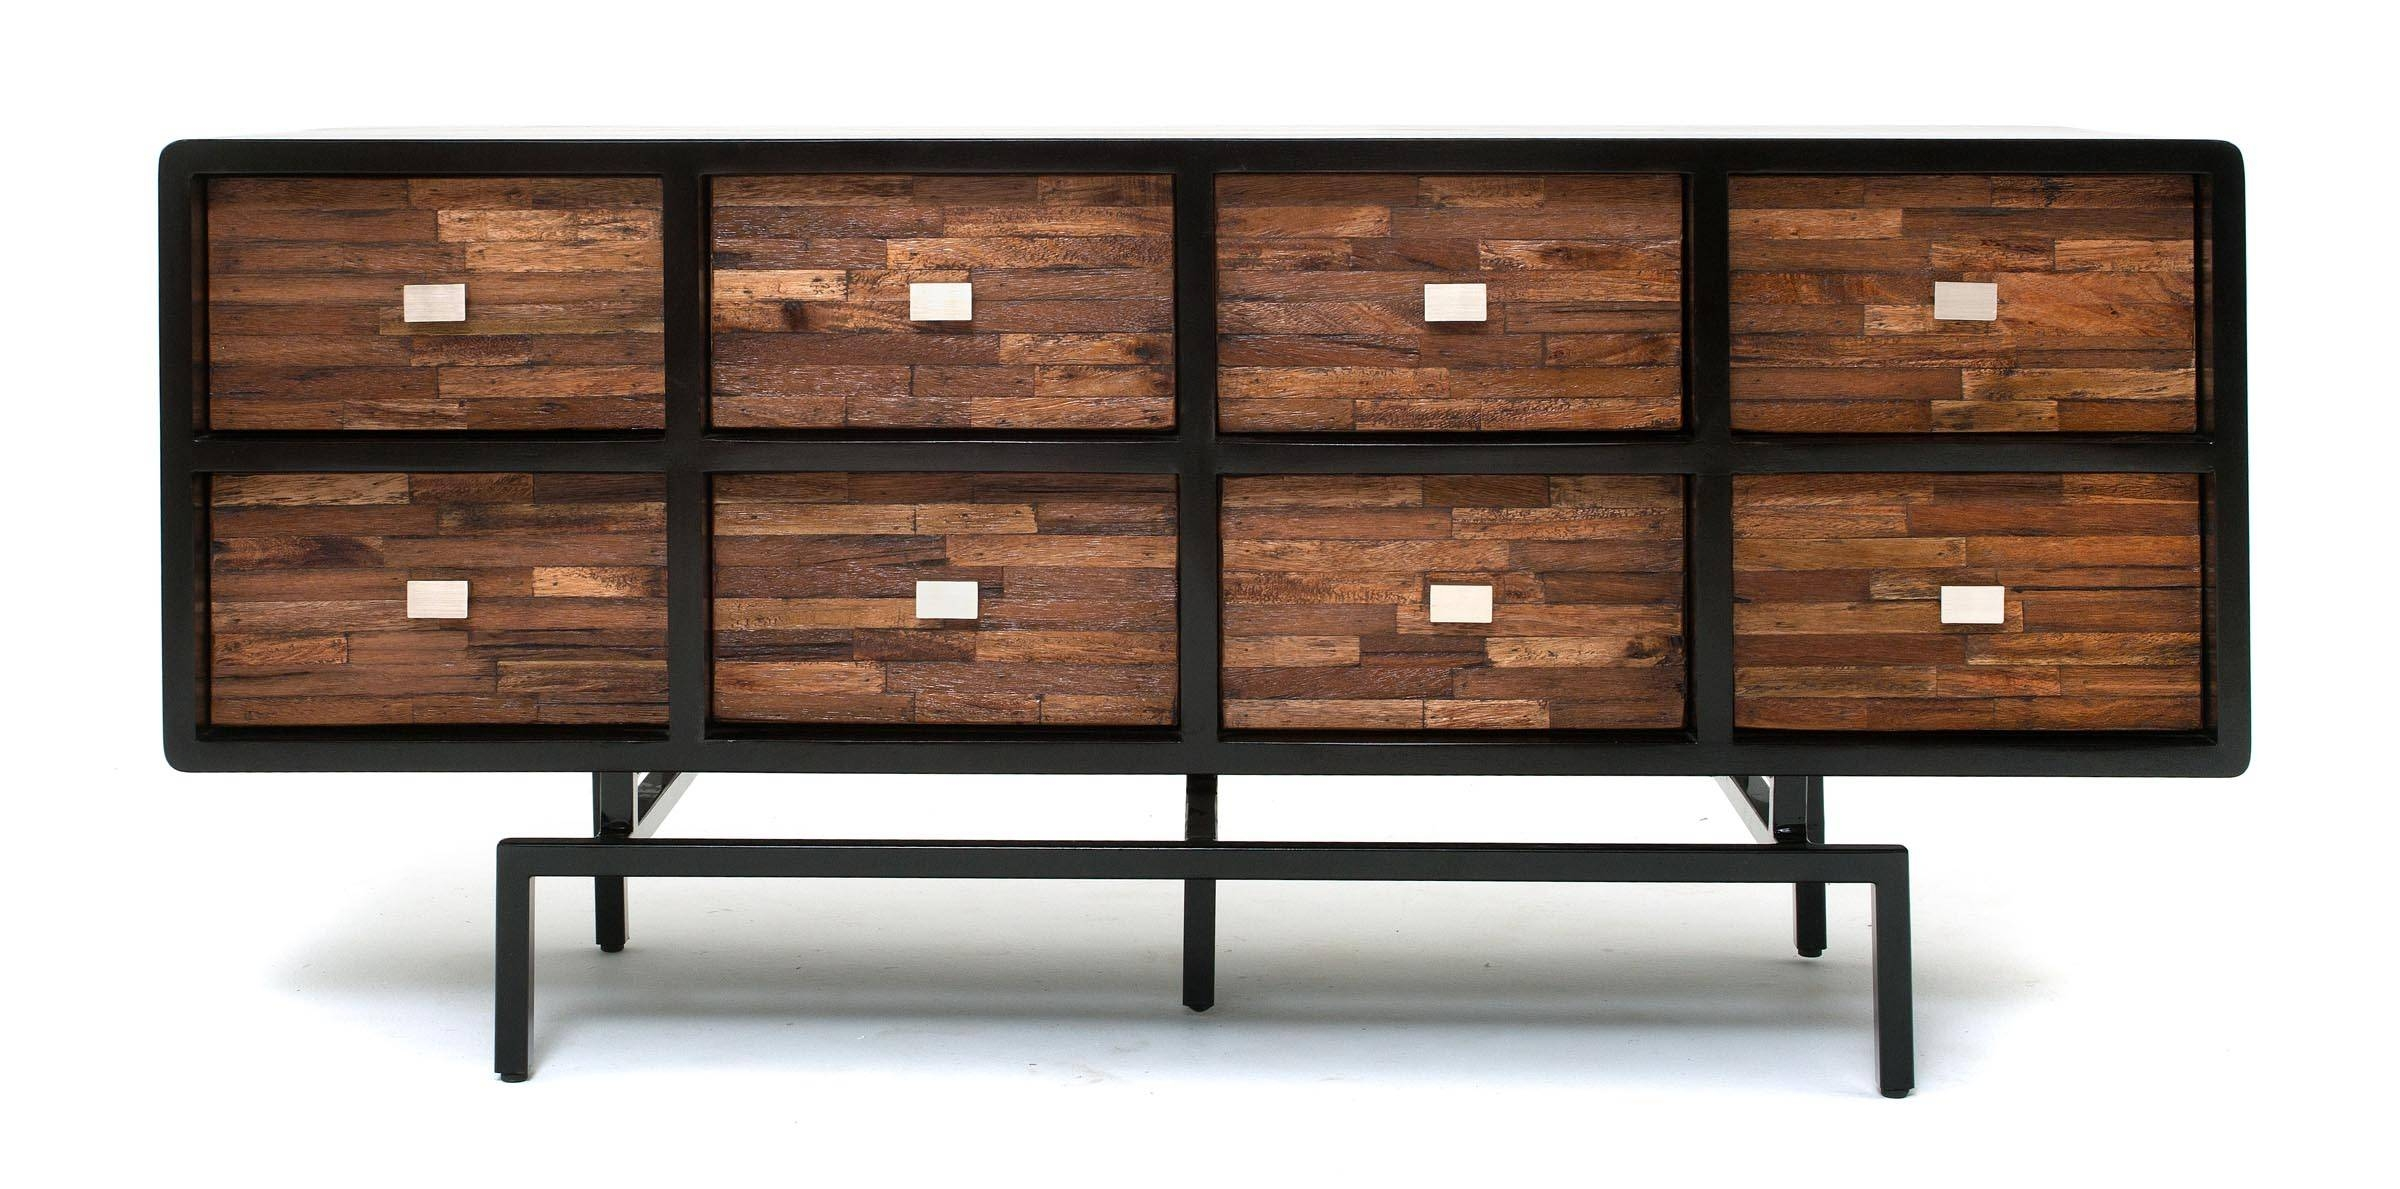 Soft Modern Furniture, Sustainable Sideboard, Reclaimed Wood Pertaining To Modern Sideboard Furniture (View 14 of 15)